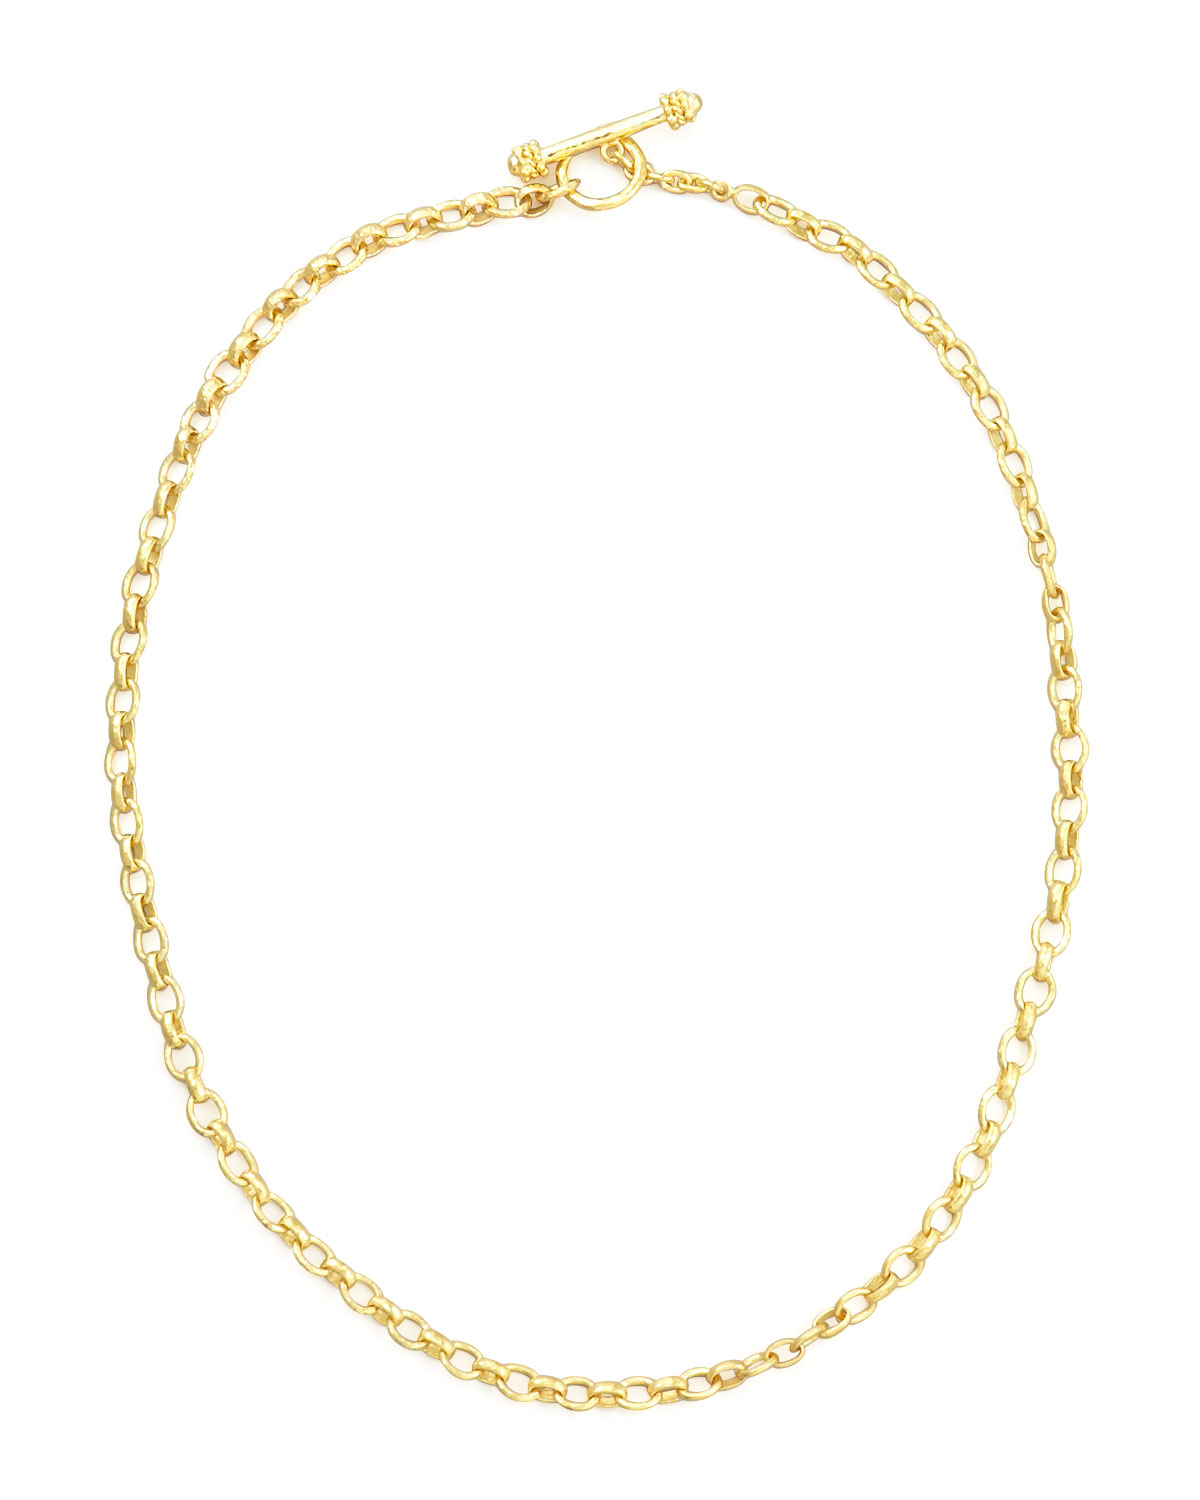 Cortina 19k Gold Link Necklace